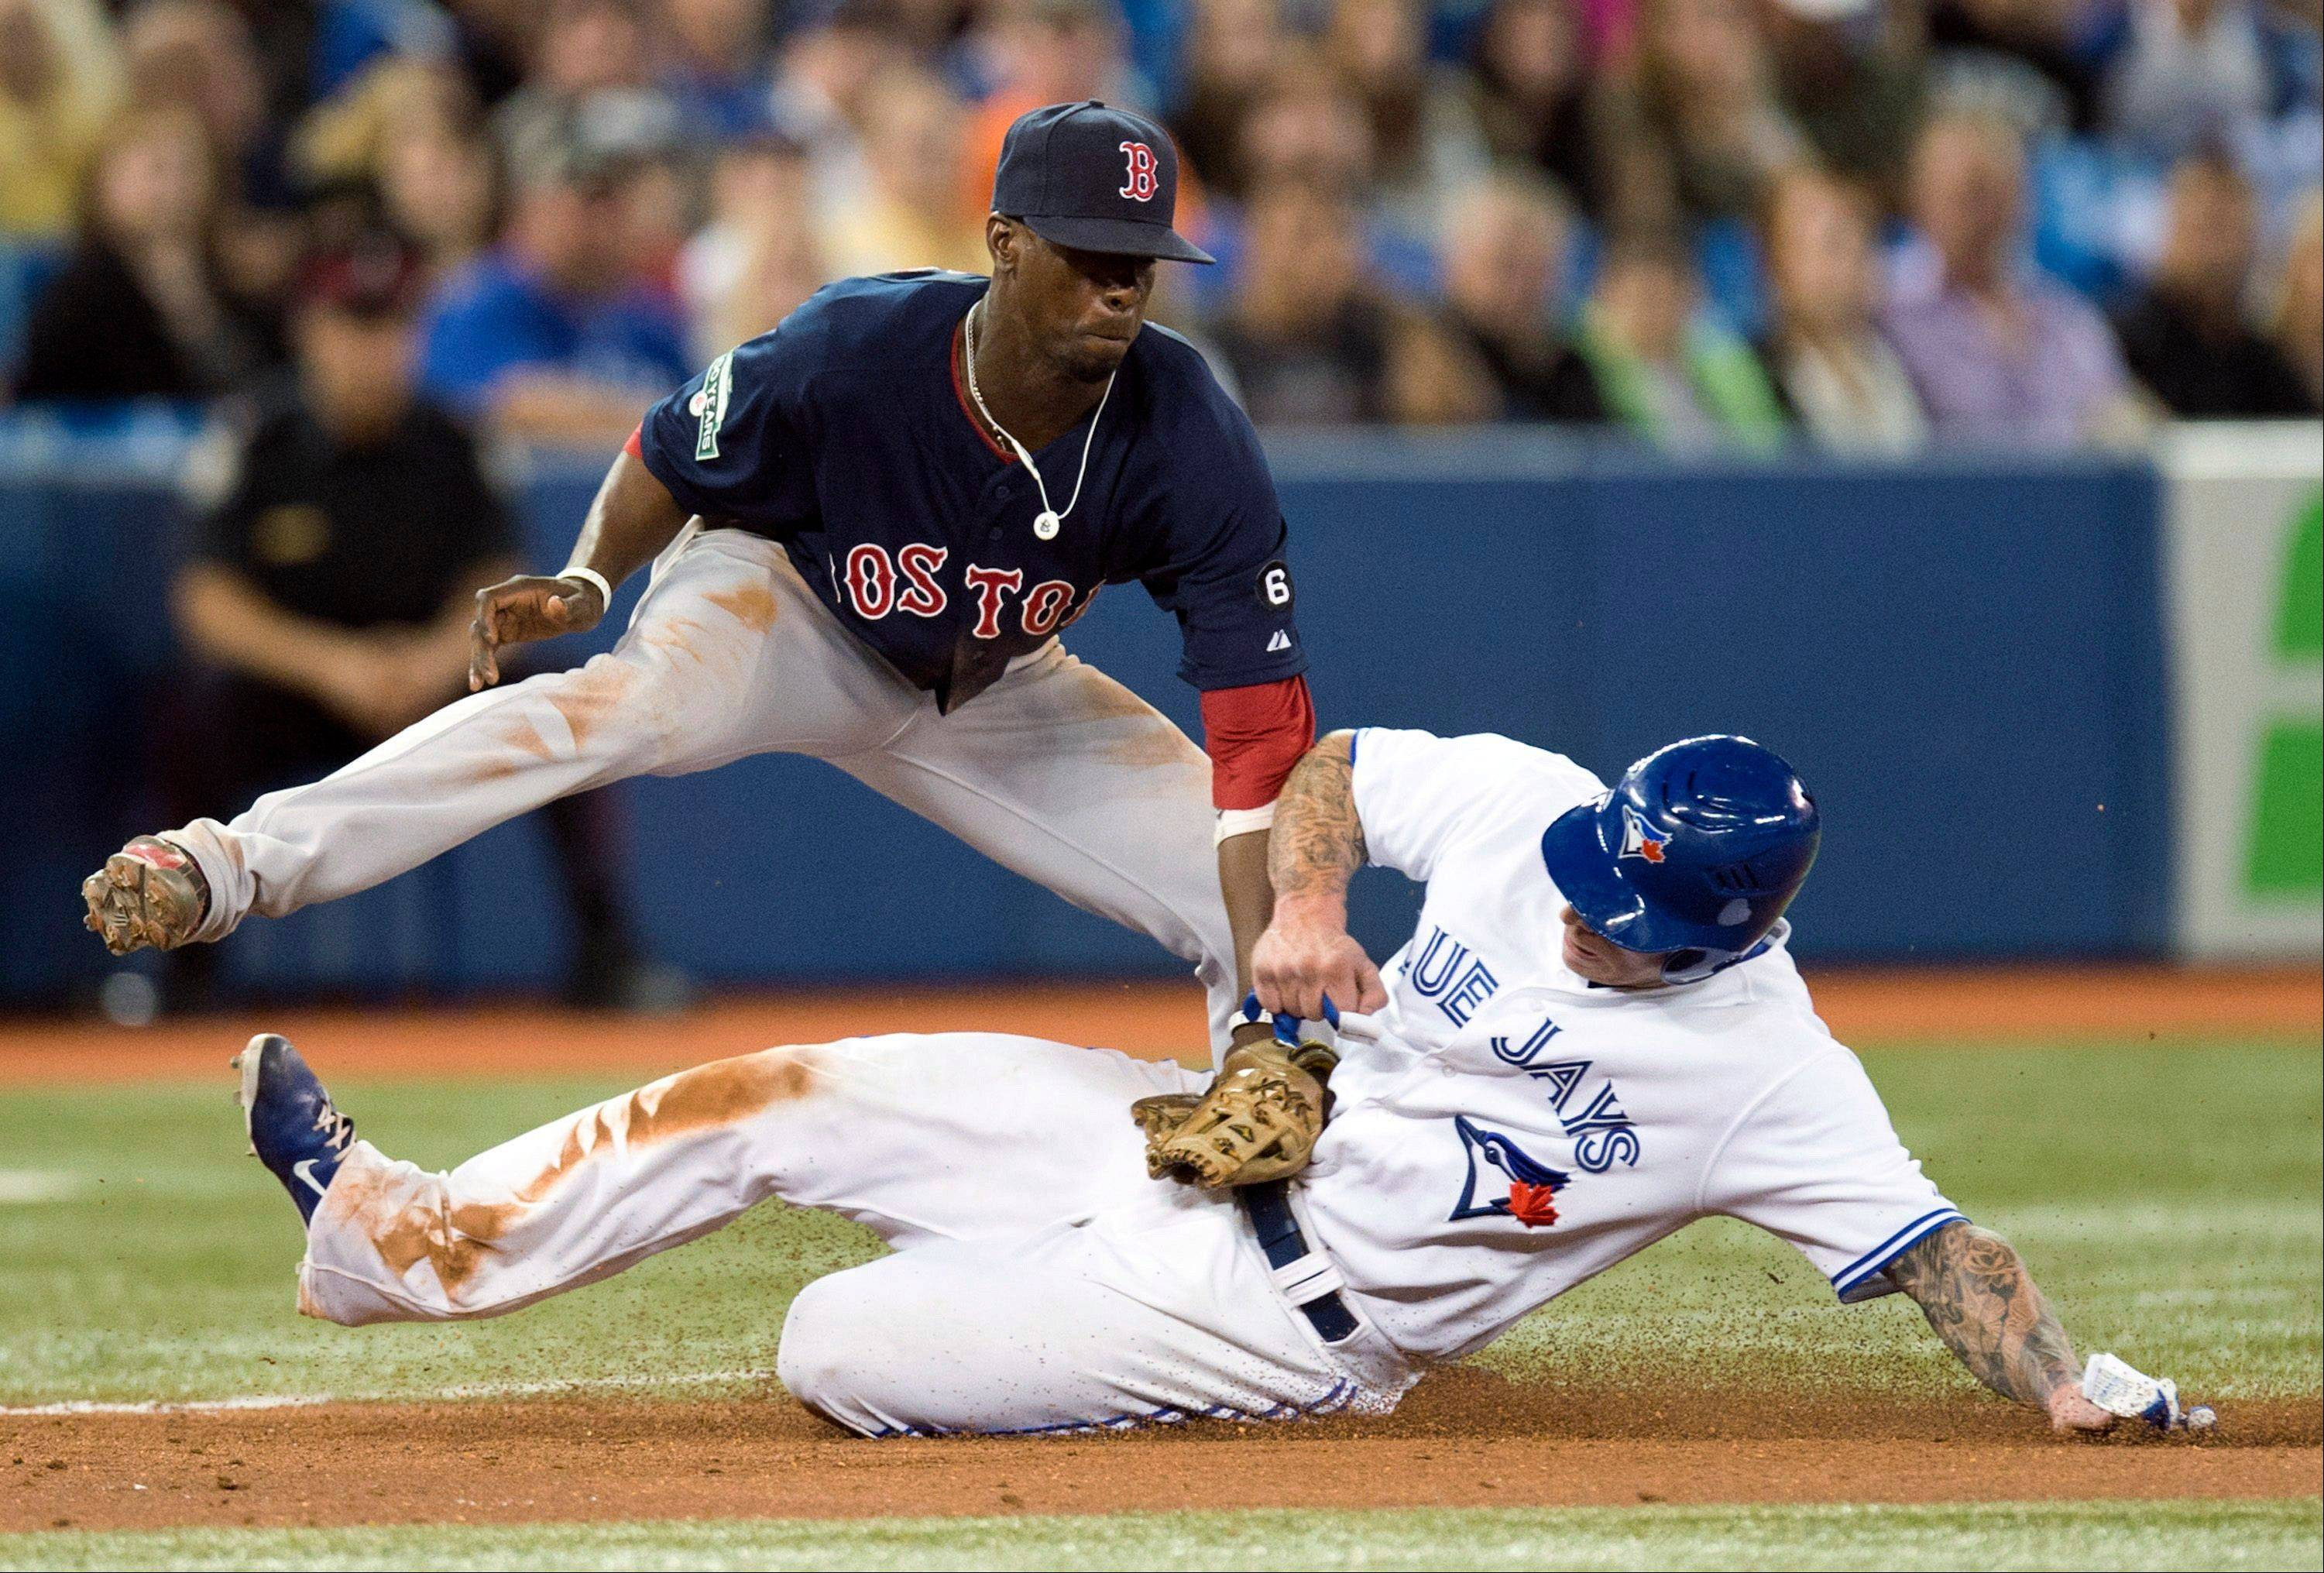 Boston Red Sox third baseman Pedro Ciriaco tags out the Blue Jays' Brett Lawrie during the eighth inning Friday in Toronto.